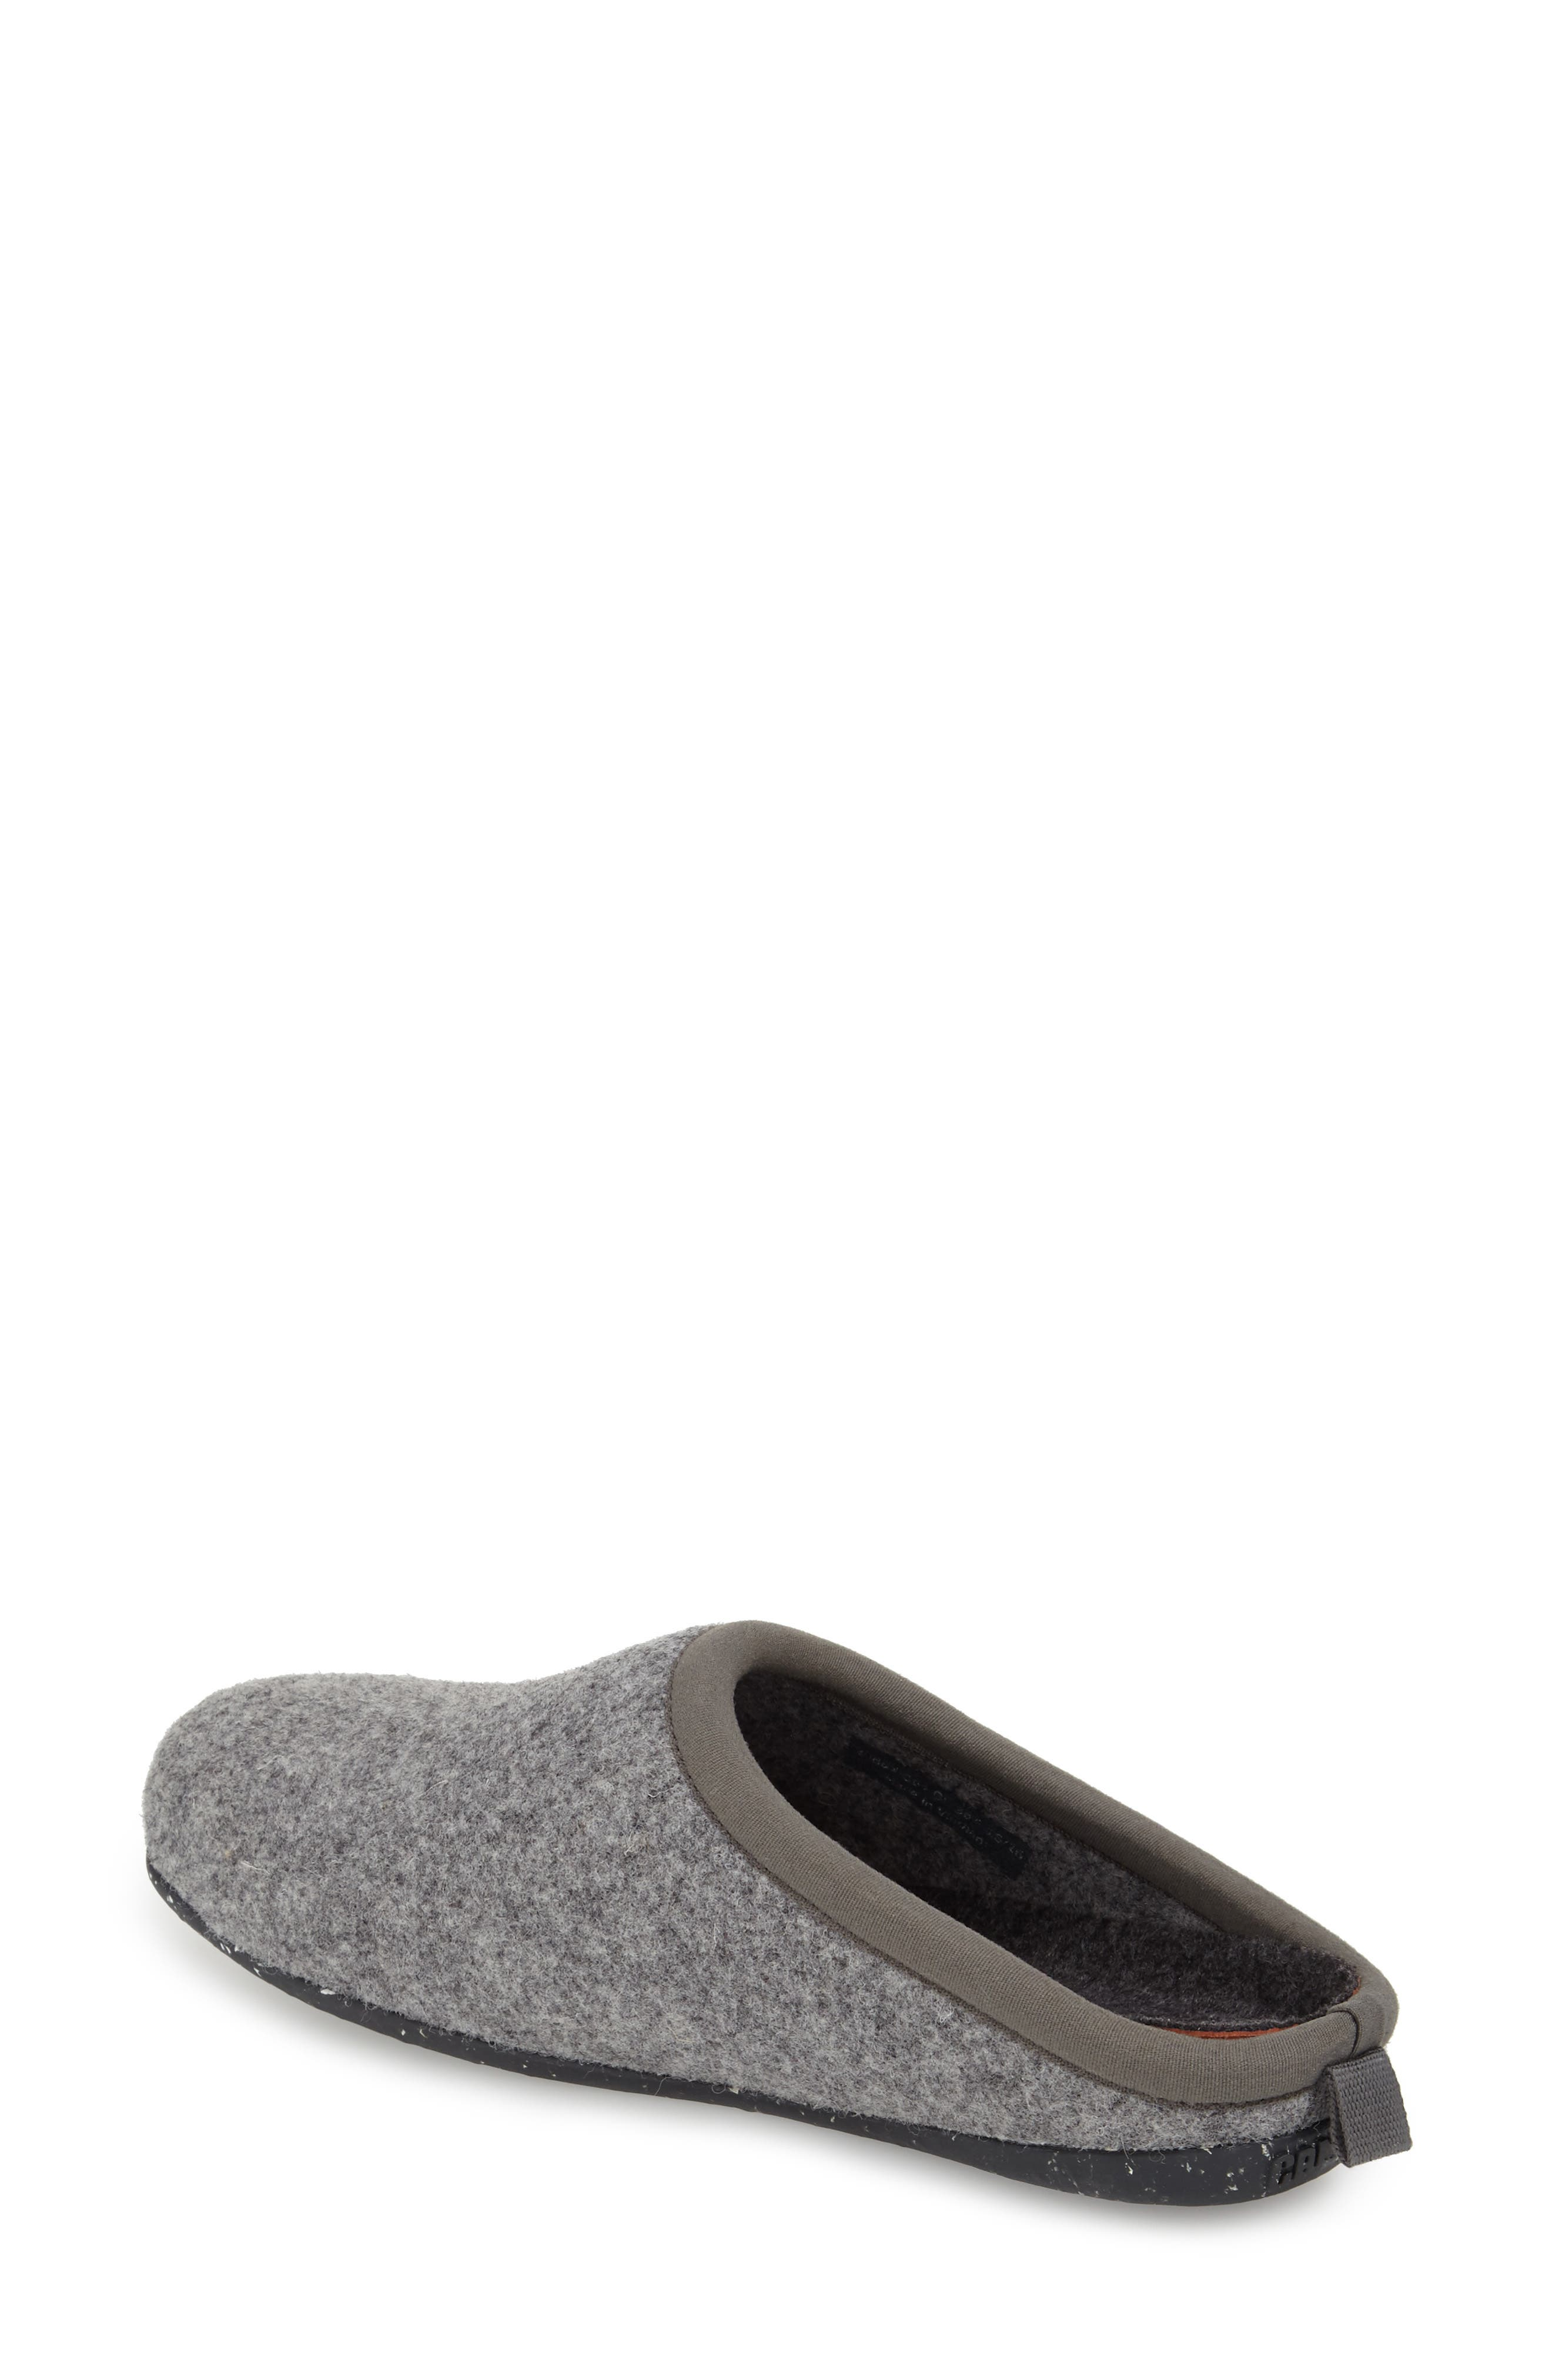 'Wabi' Slipper,                             Main thumbnail 1, color,                             DARK GRAY WOOL